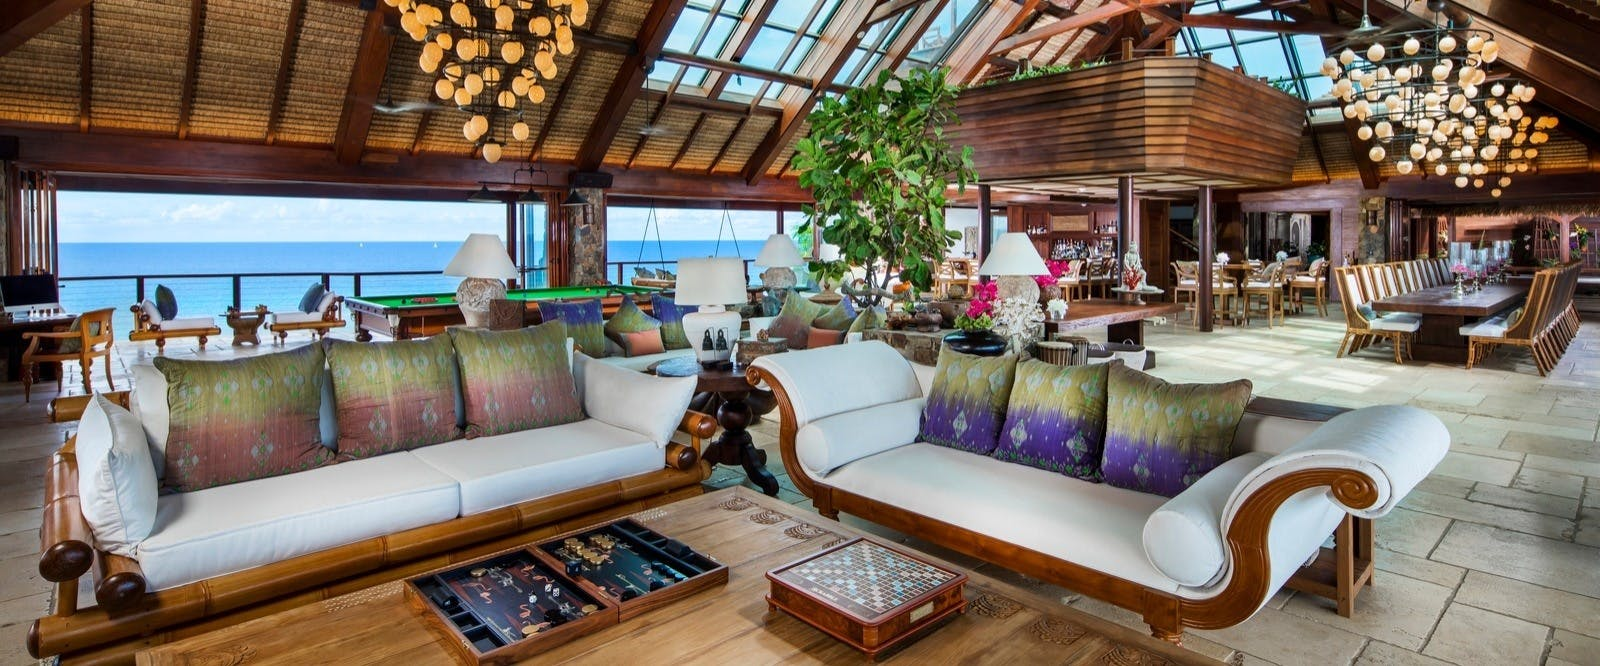 The Great House at Necker Island, British Virgin Islands